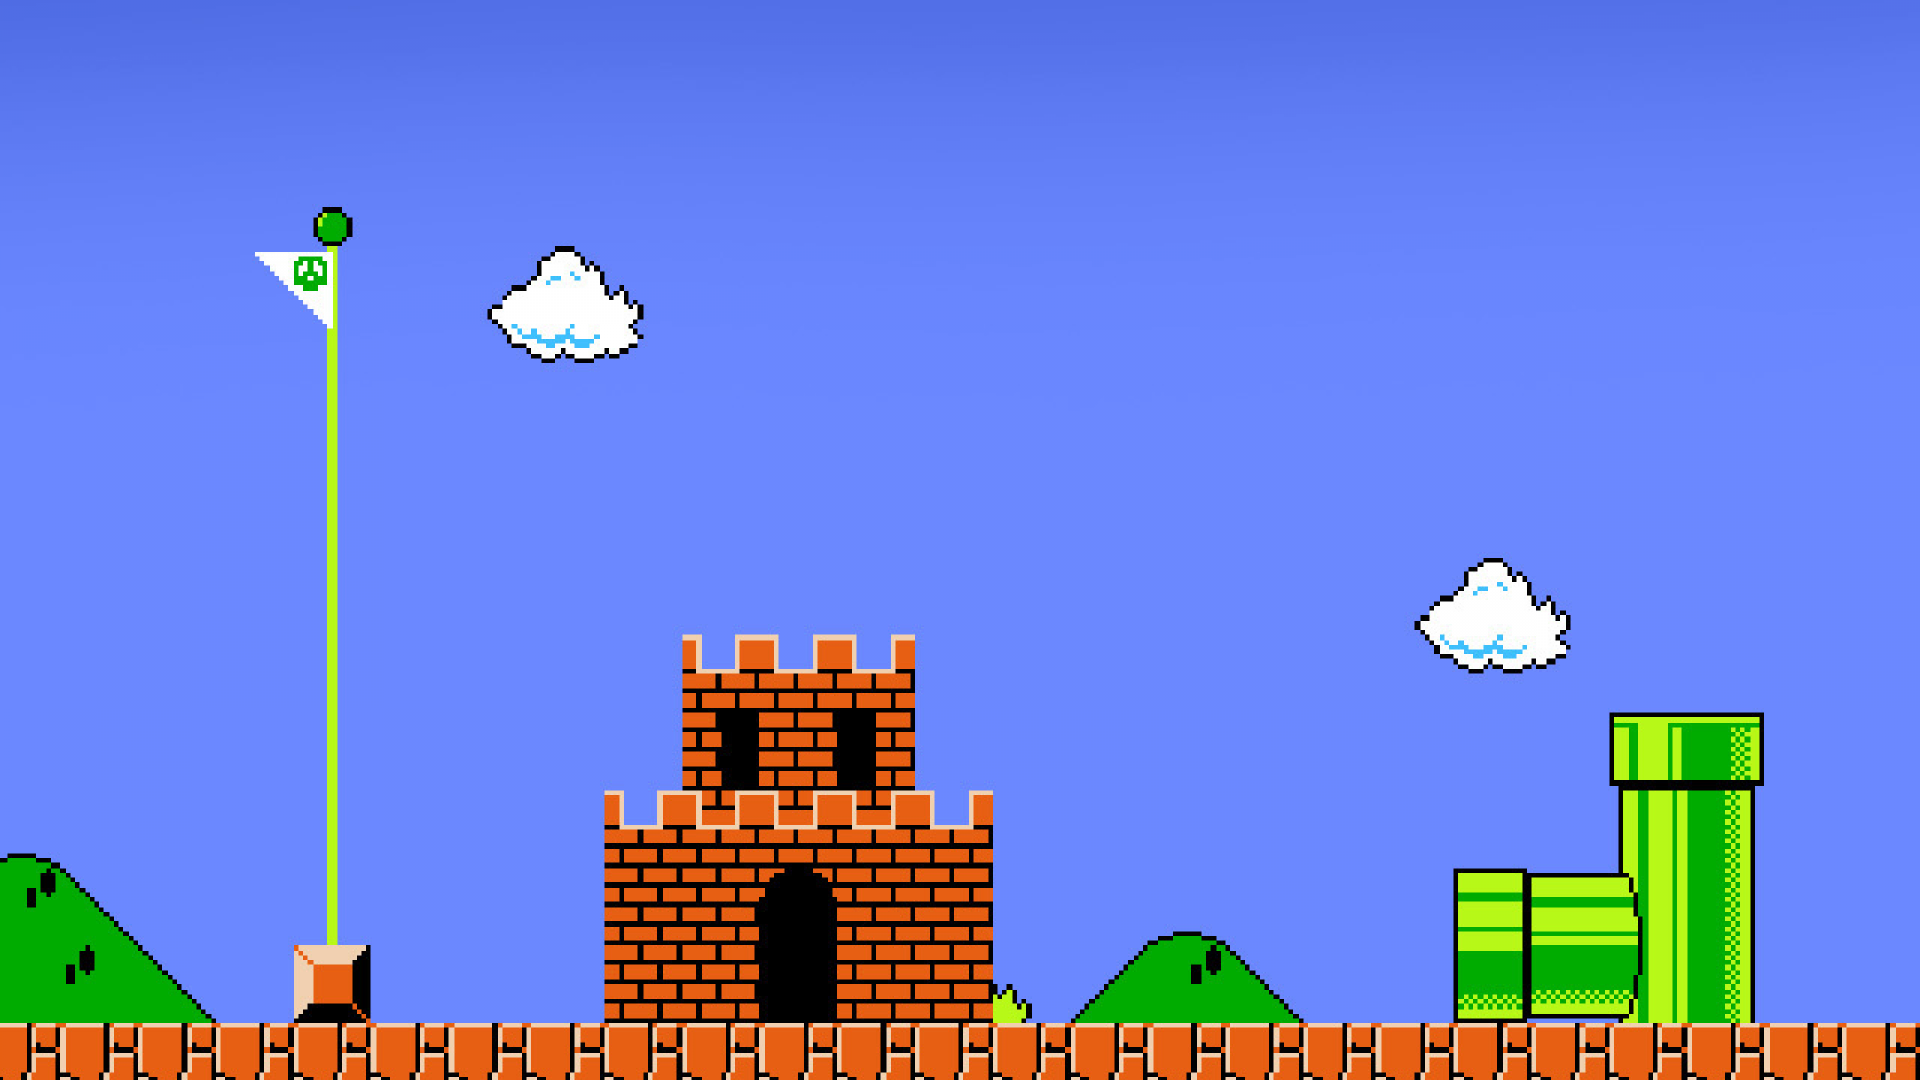 Finish Super Mario Wallpaper